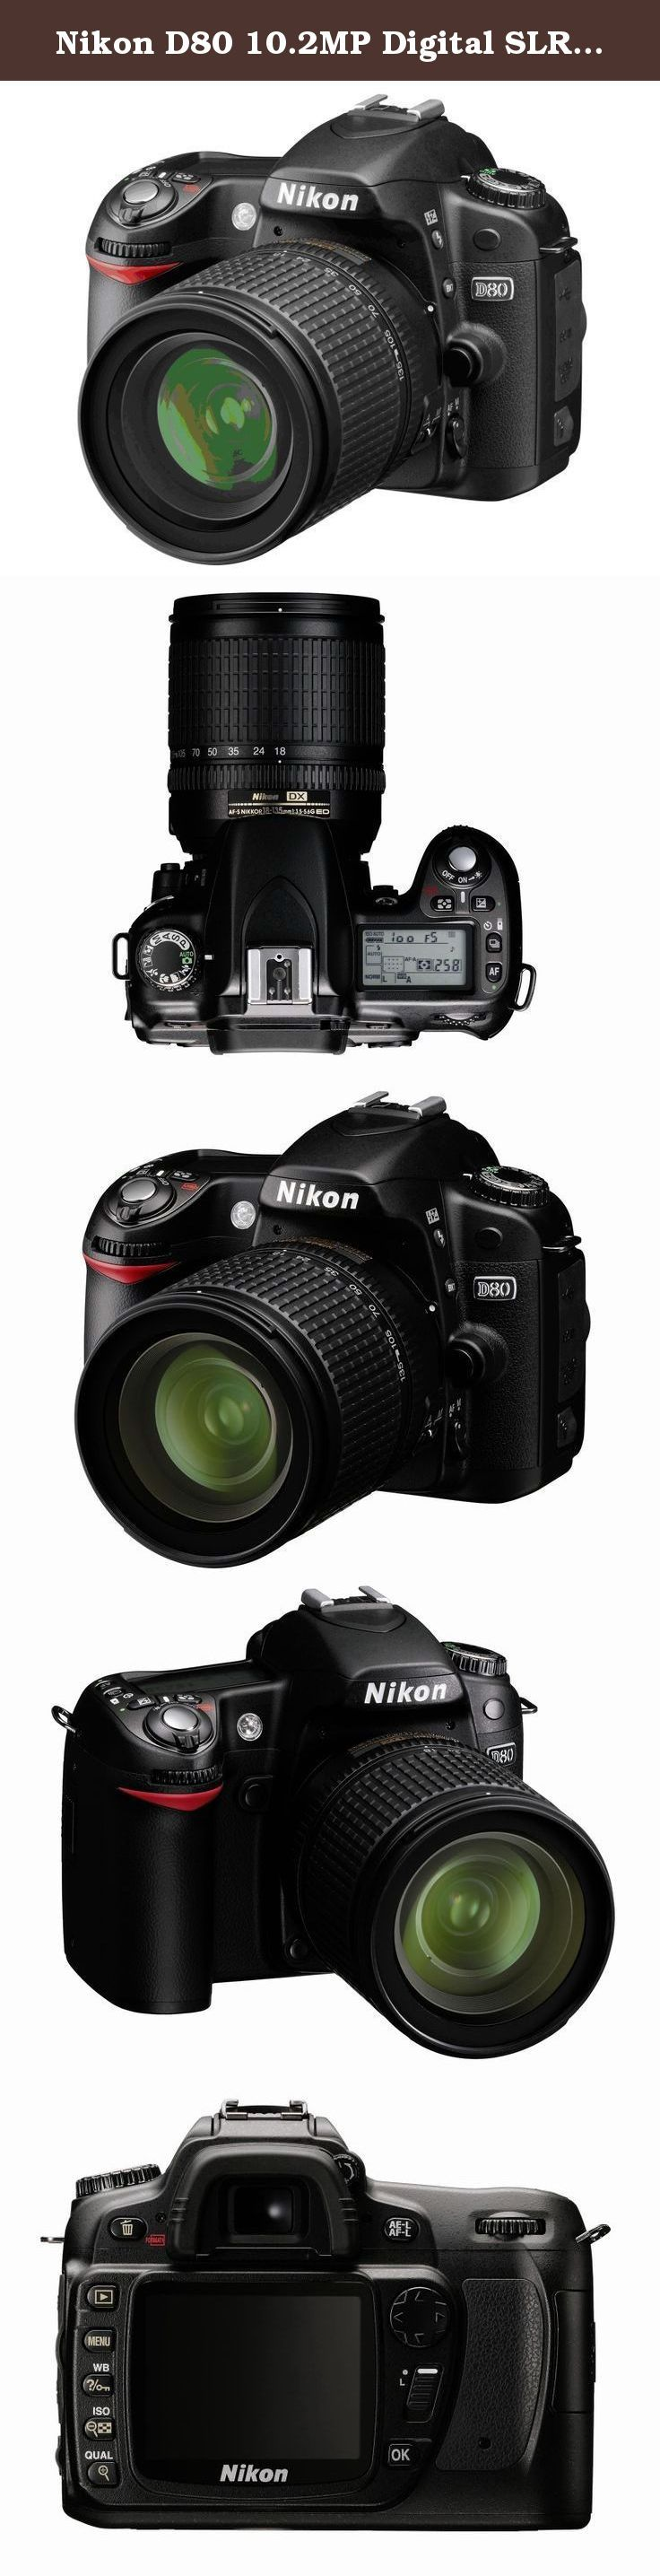 Nikon D80 10.2MP Digital SLR Camera Kit with 18-135mm AF-S DX Zoom-Nikkor Lens. The D80 packs high performance and high resolution into a body that is more compact and slimmer than previous Nikon digital SLR cameras. True to Nikon's commitment to intuitive operation, the size, layout and operation of all buttons and controls are designed for maximum ease of use, and the included 18-55mm ED II AF-S DX Zoom-Nikkor lens allows you to start shooting right away.